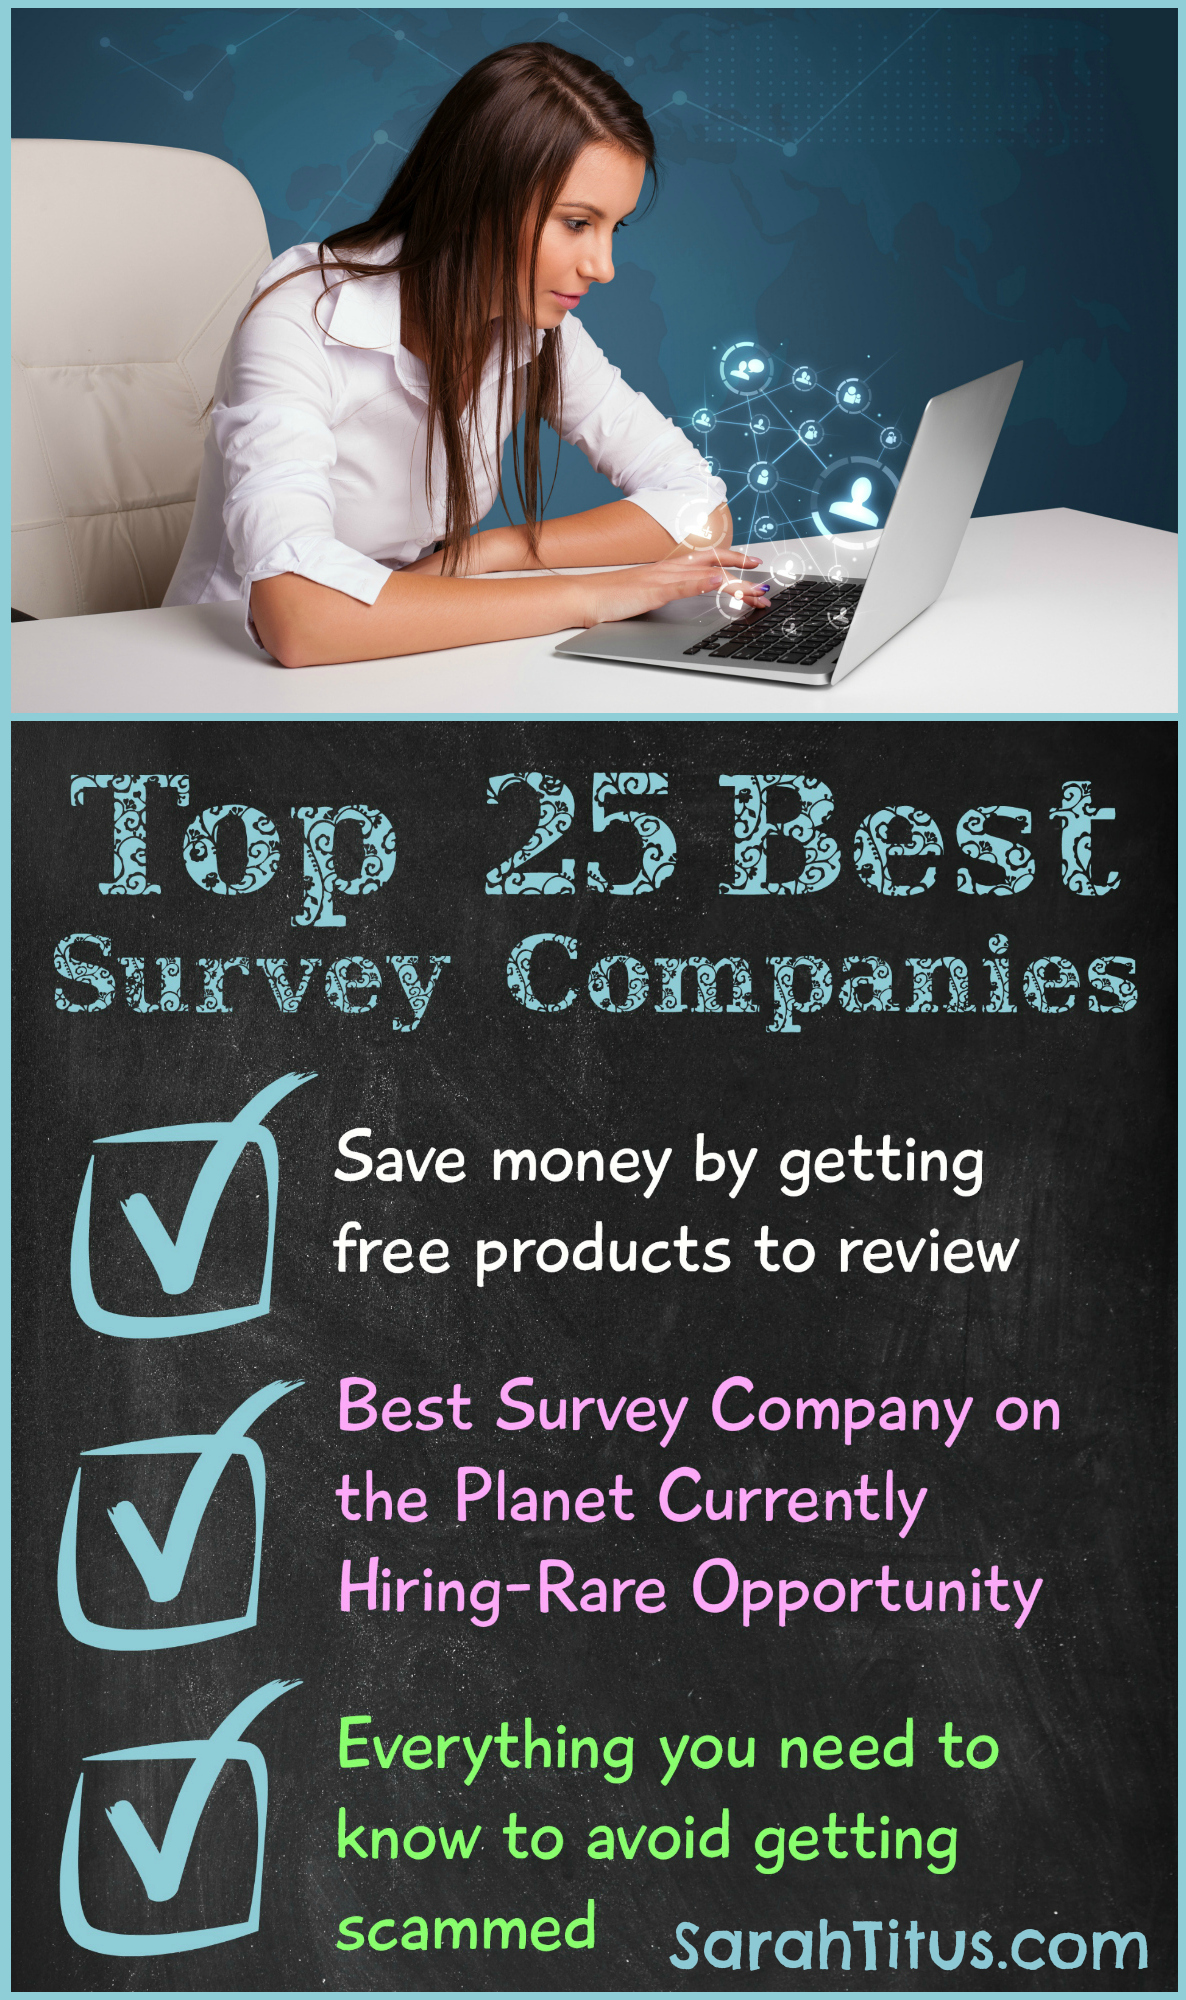 Top 25 Best Survey Companies